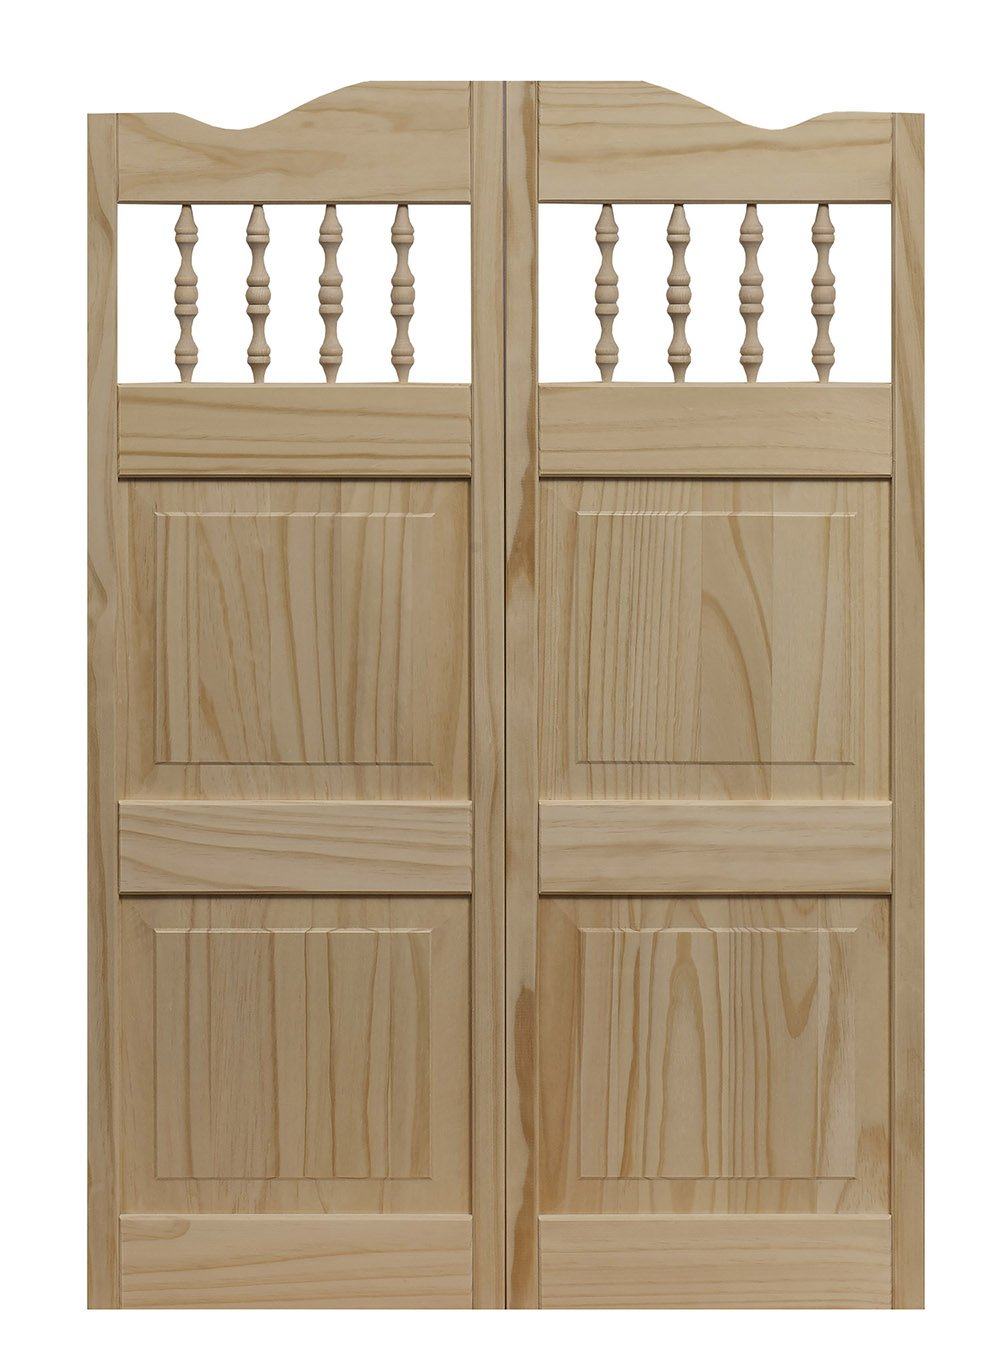 Pinecroft 848042 Carson City Café Interior Swing Wood Door, 30'' x 42'', Unfinished